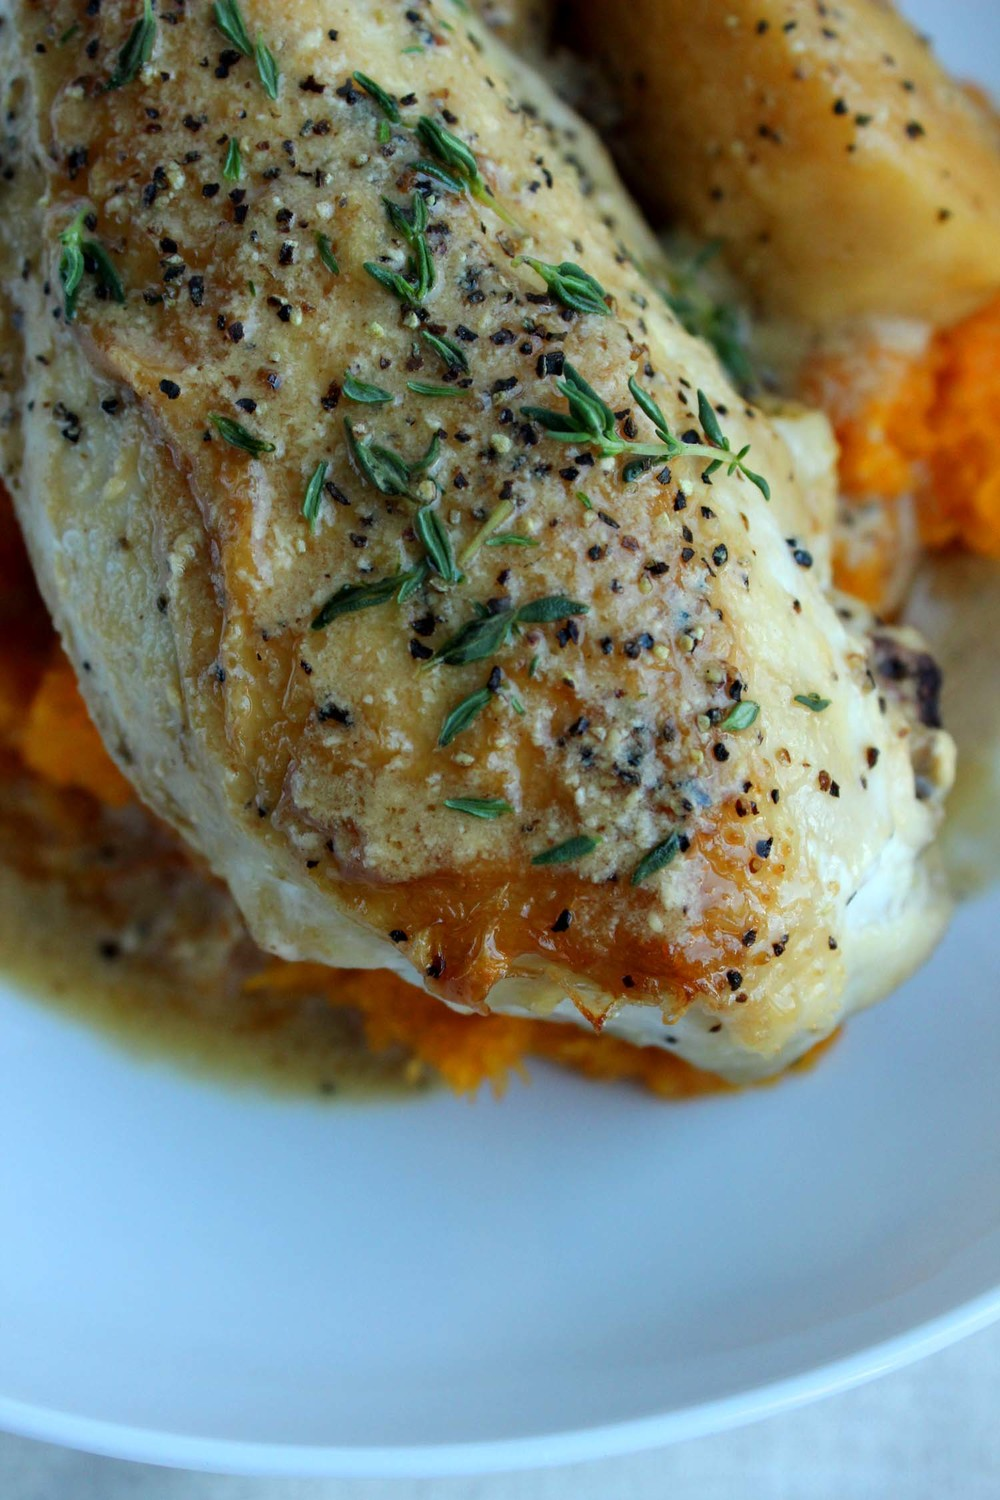 Cider Braised Chicken & Apples   | Image:   Laura Messersmith